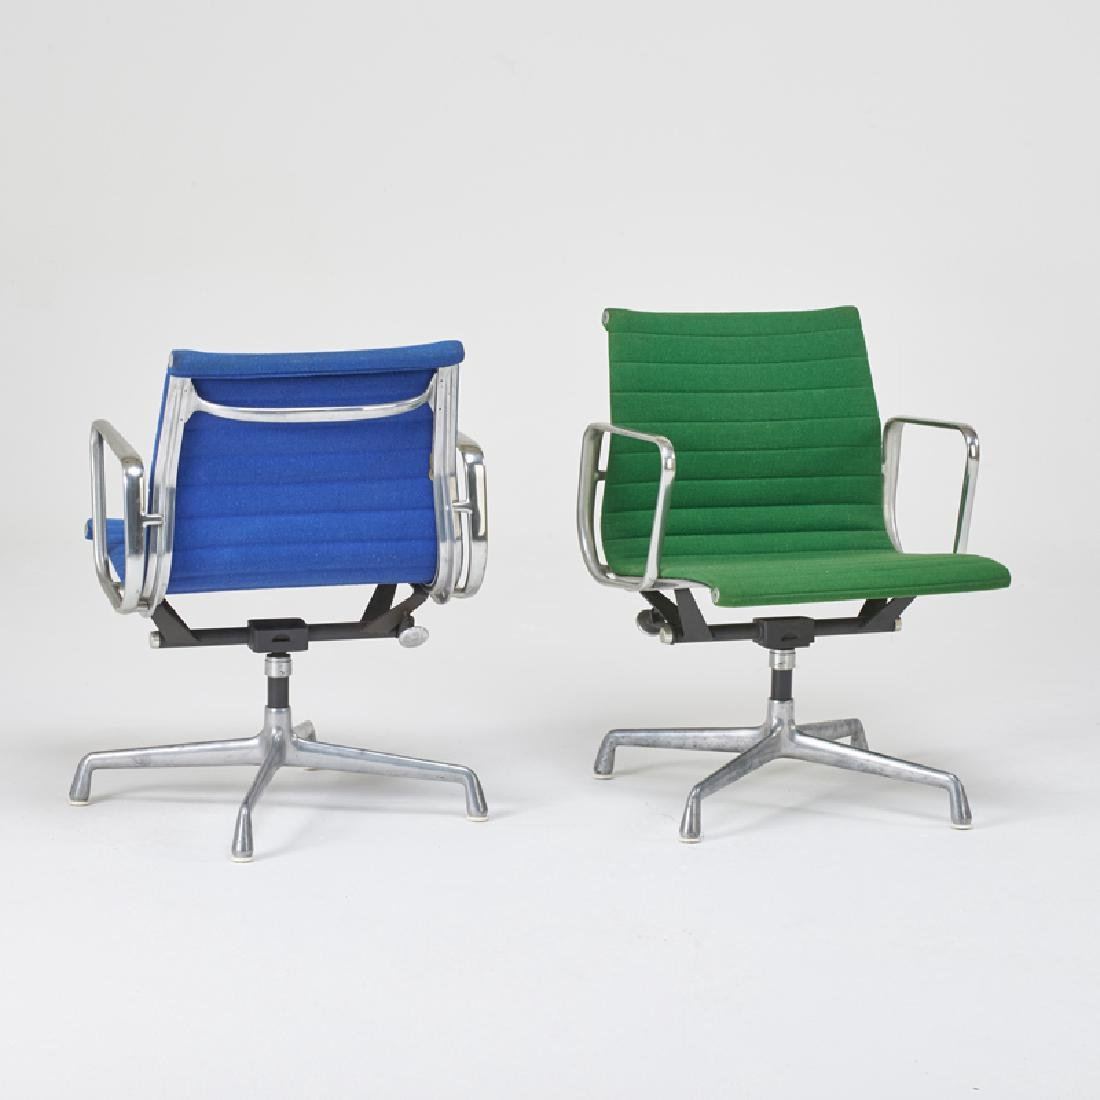 CHARLES & RAY EAMES; HERMAN MILLER